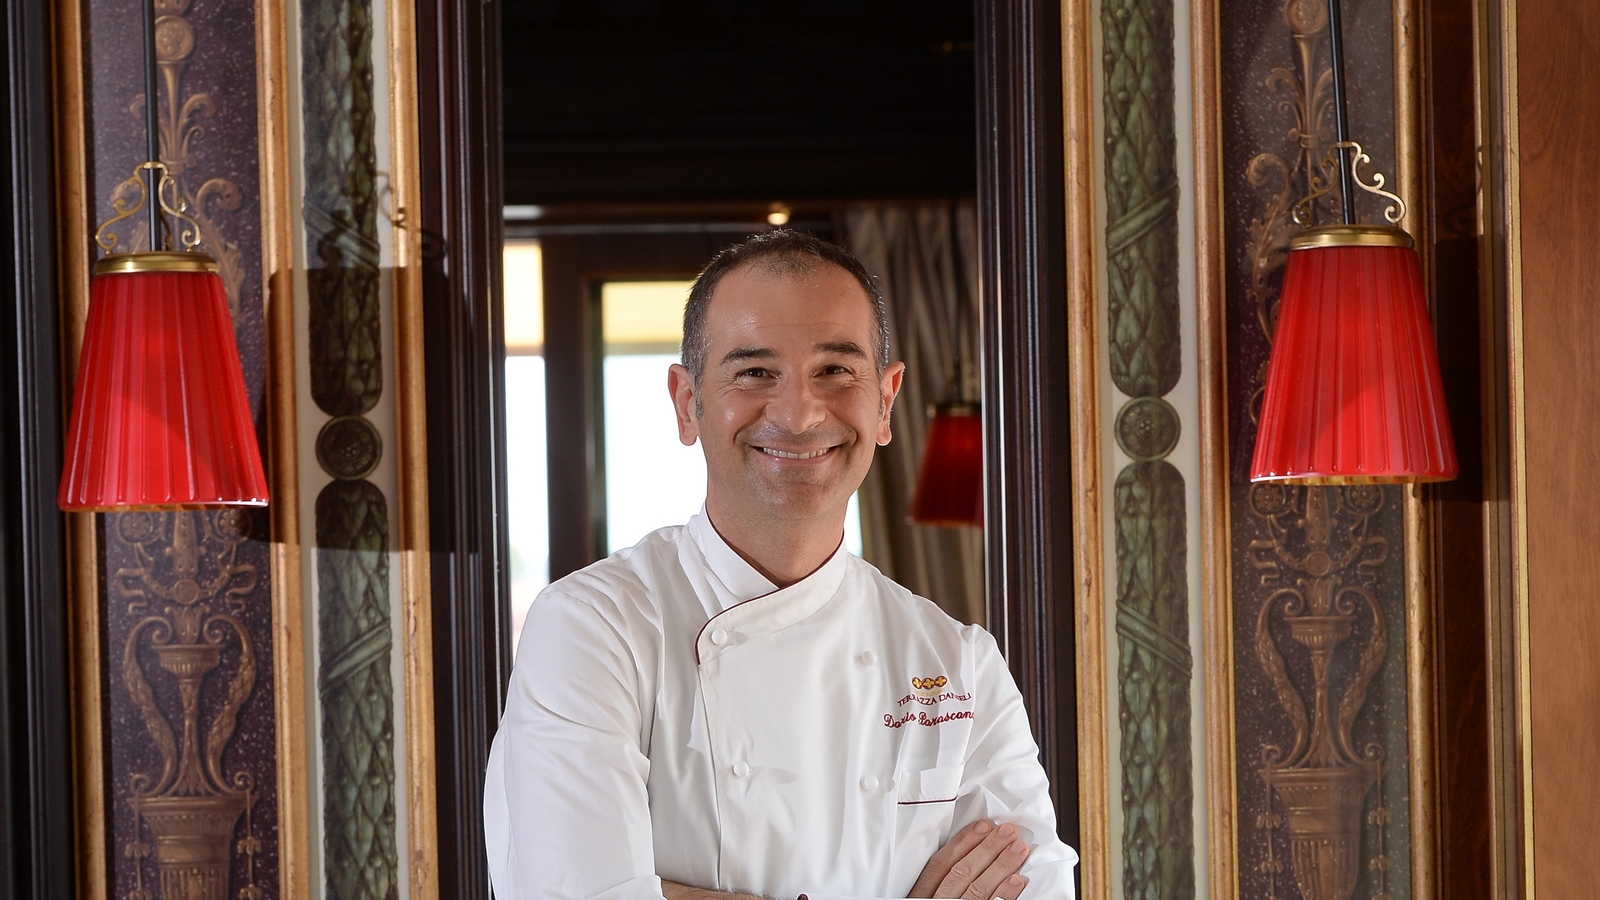 Executive Chef Dario Parascandolo at Hotel Danieli Venice